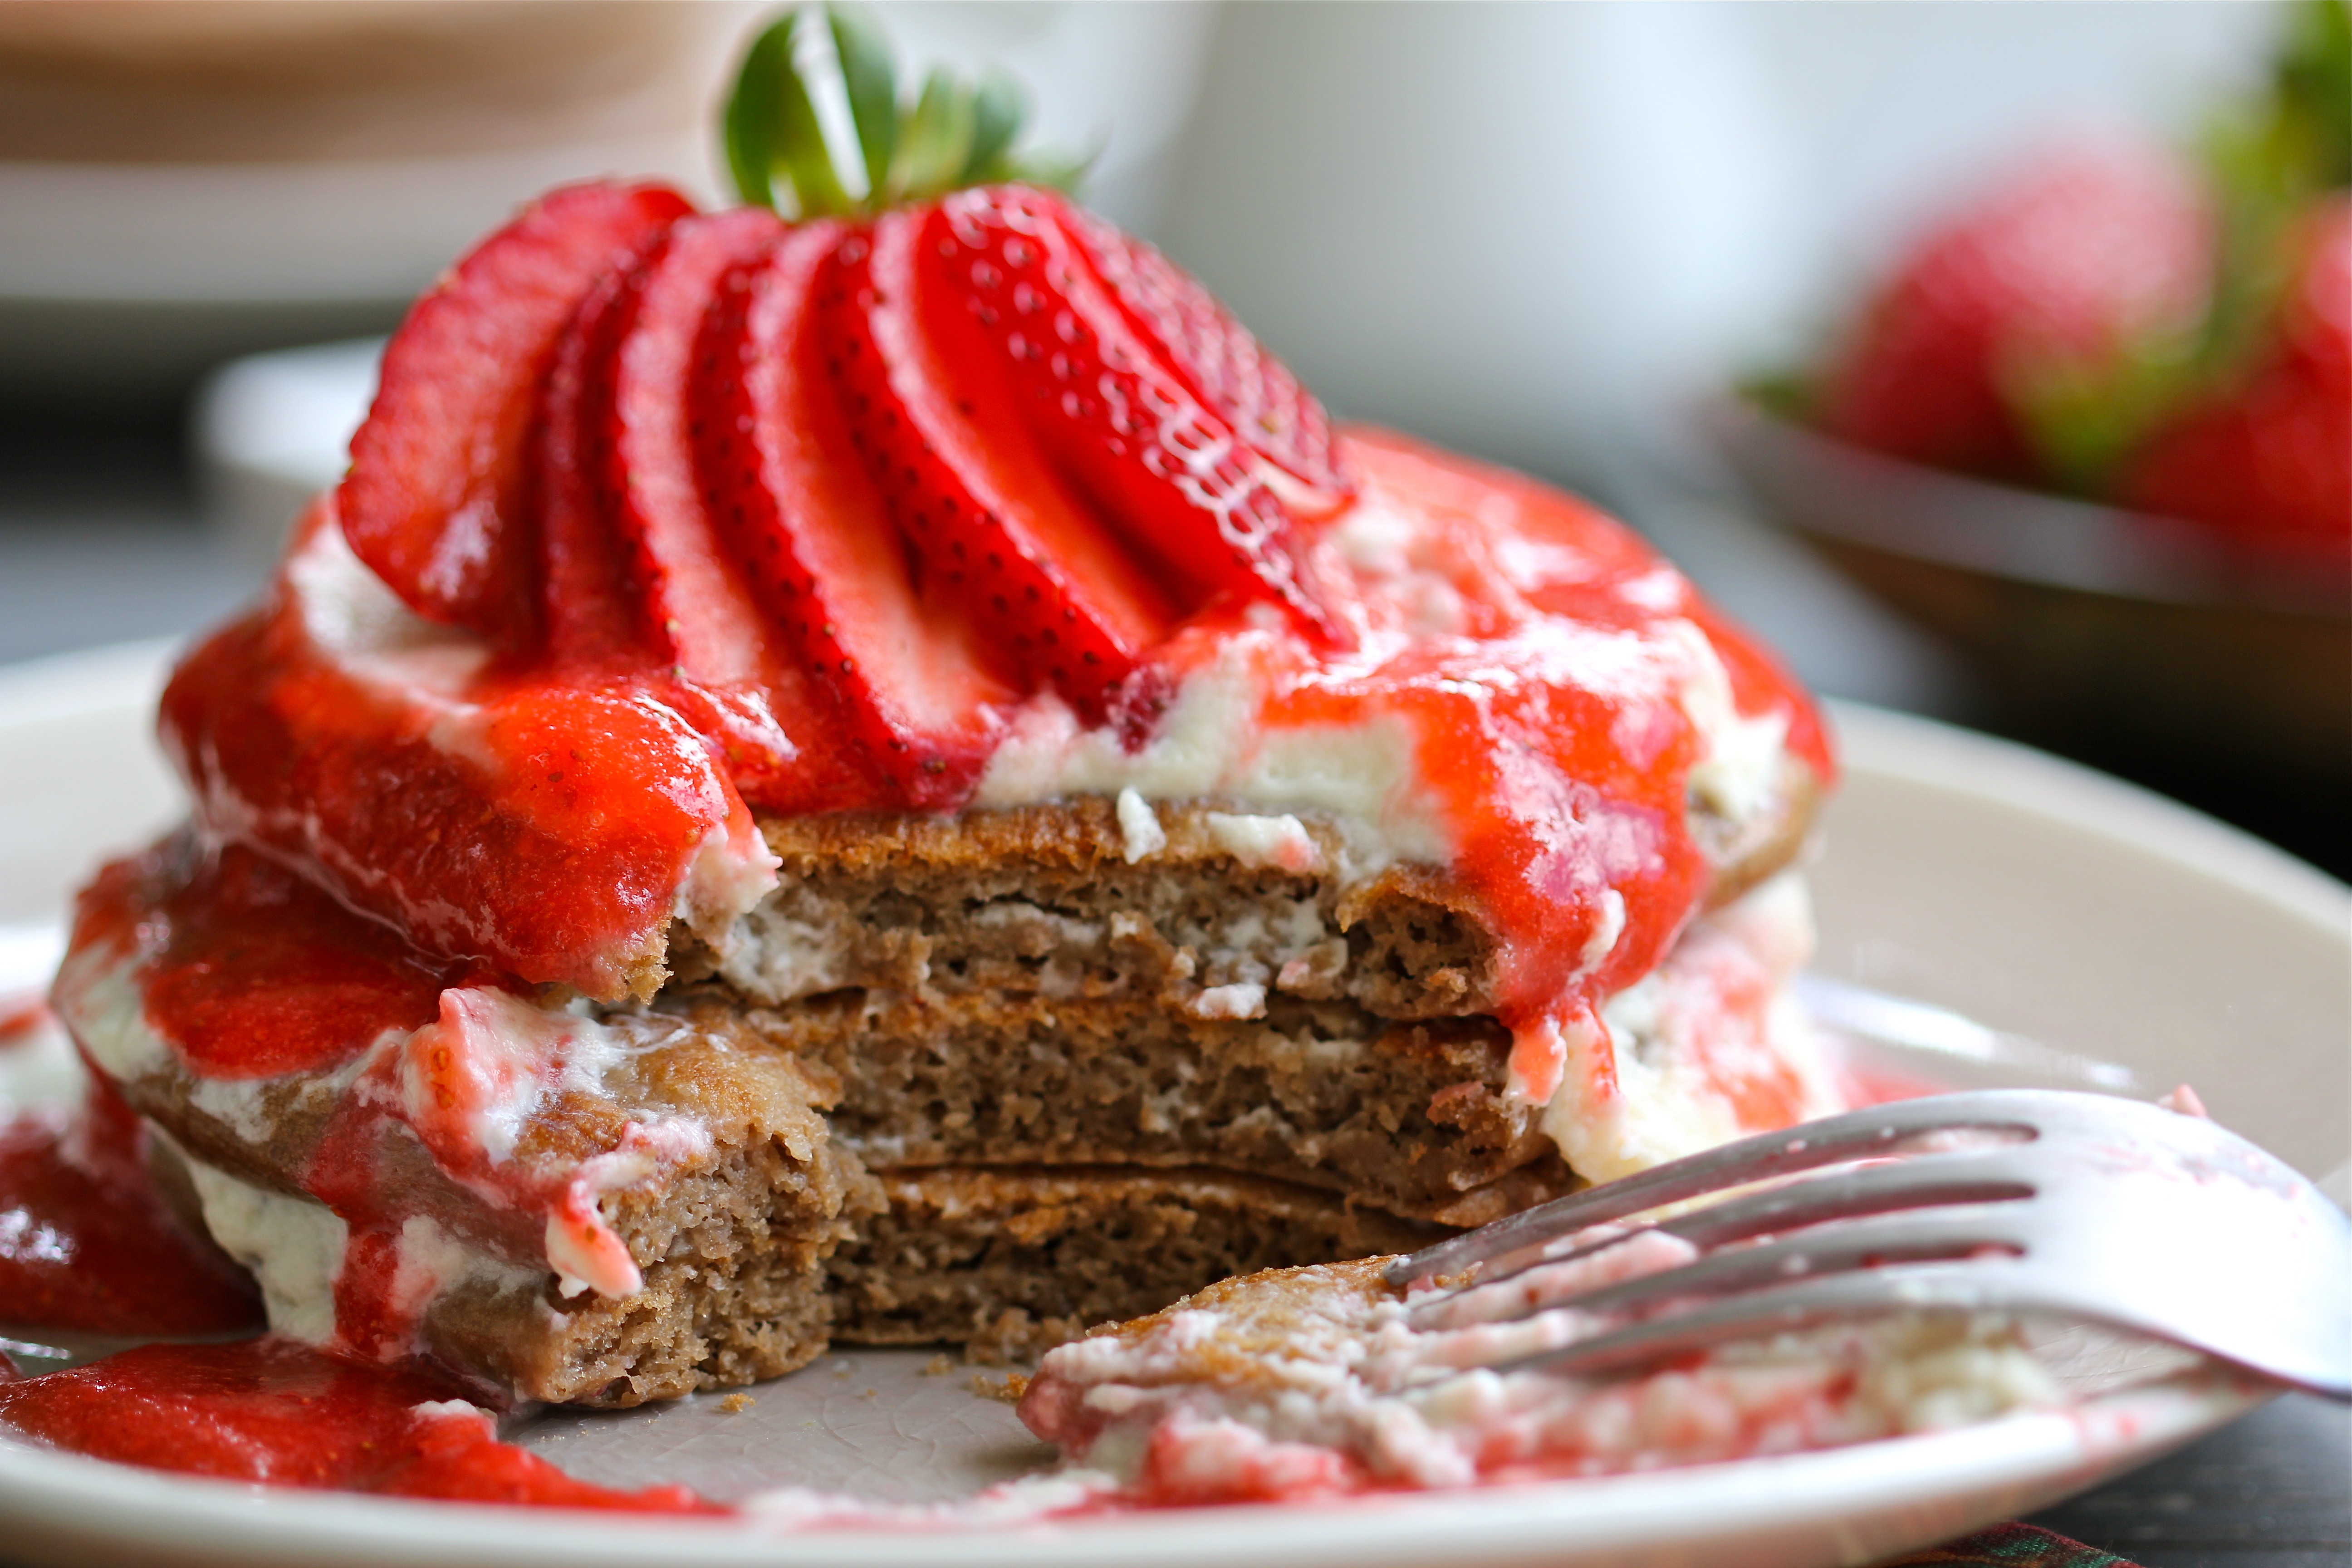 5 Photos of Strawberry Pureed Strawberry Pancakes